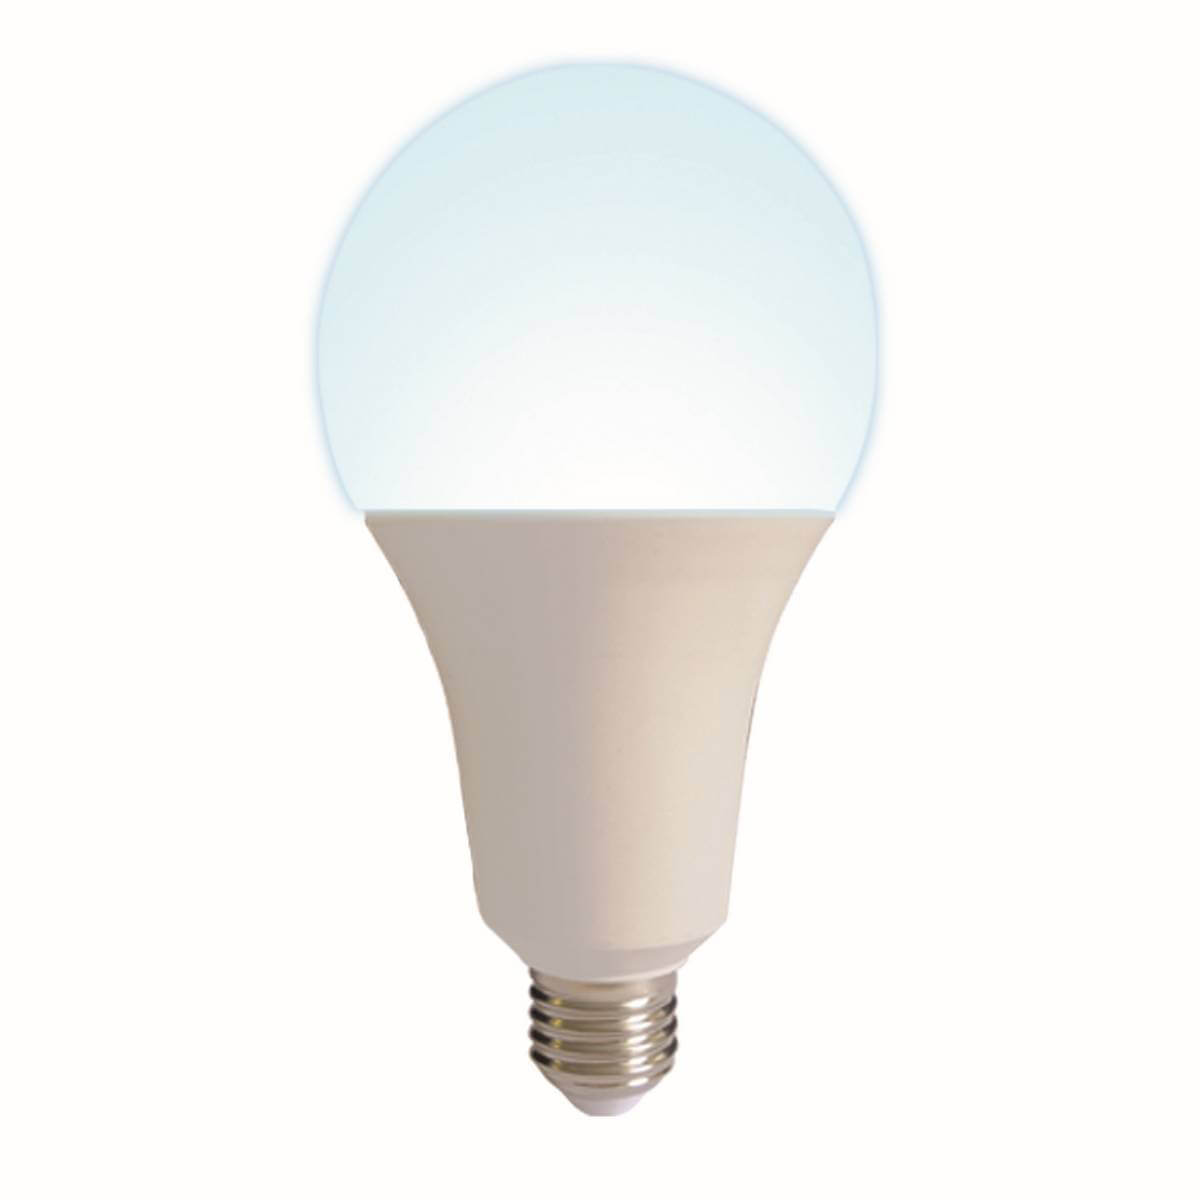 Лампочка Volpe LED-A95-35W/6500K/E27/FR/NR Norma